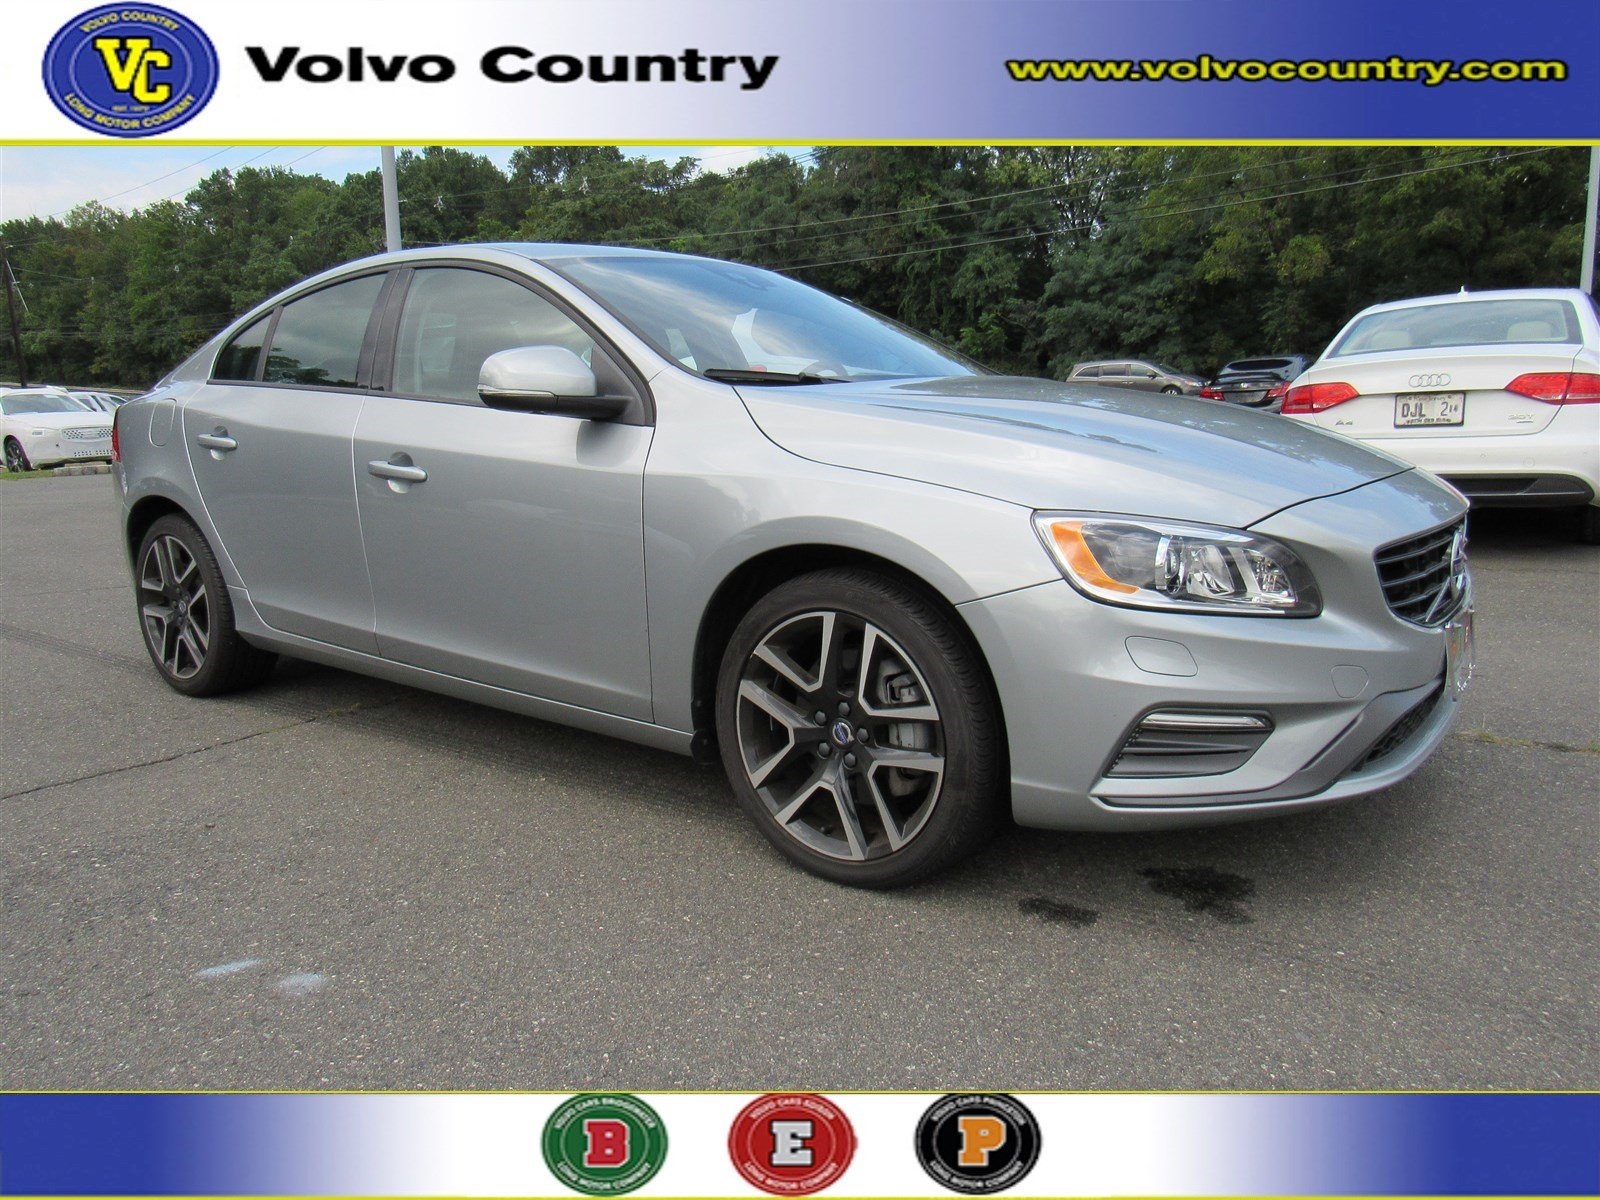 New Featured Volvo Vehicles At Volvo Cars Edison Featured New